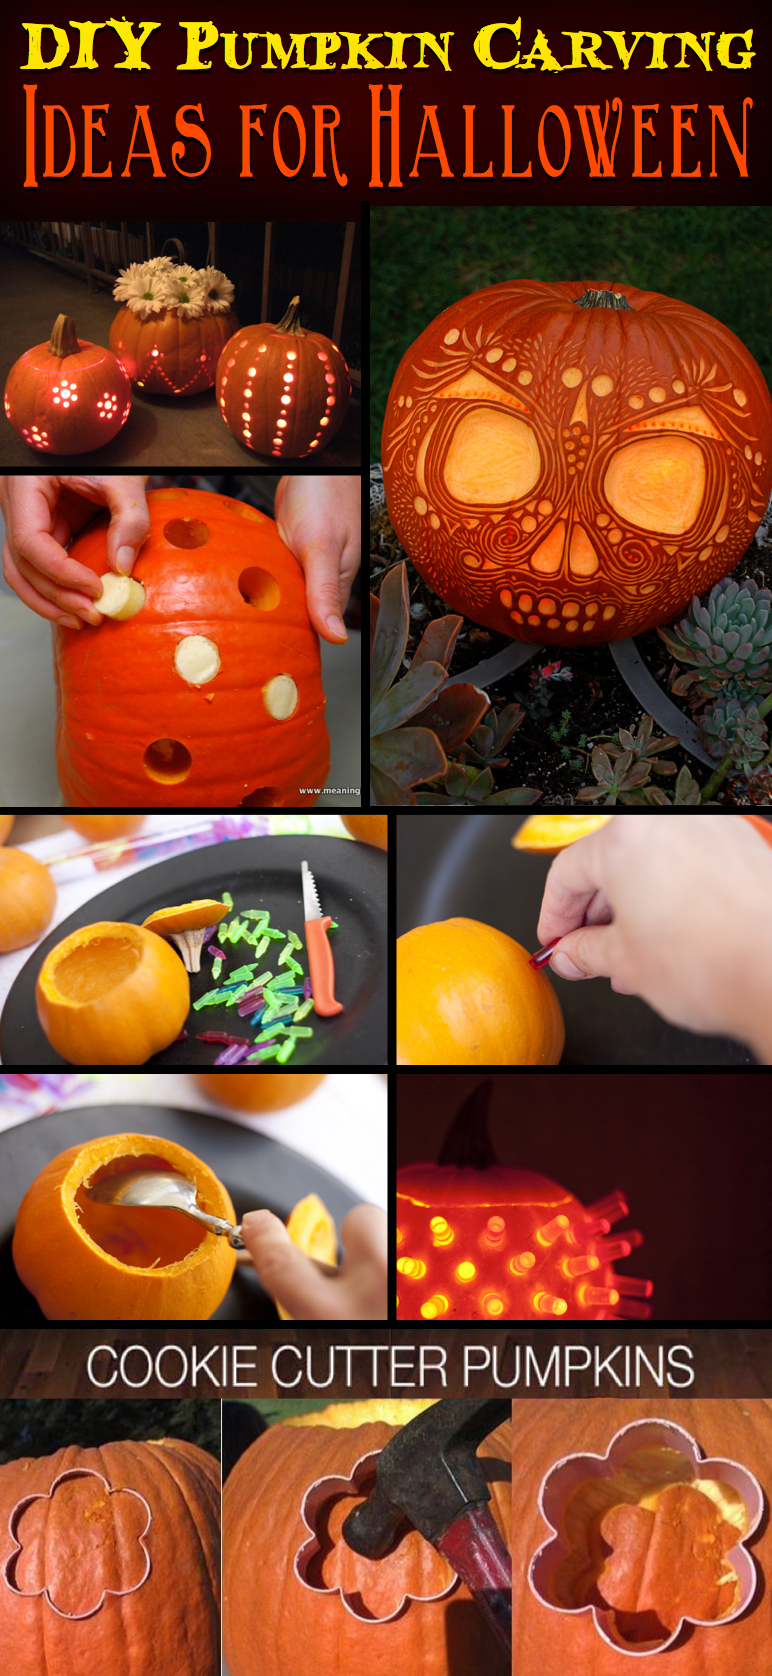 49 Easy, Cool DIY Pumpkin Carving Ideas for Halloween 2017